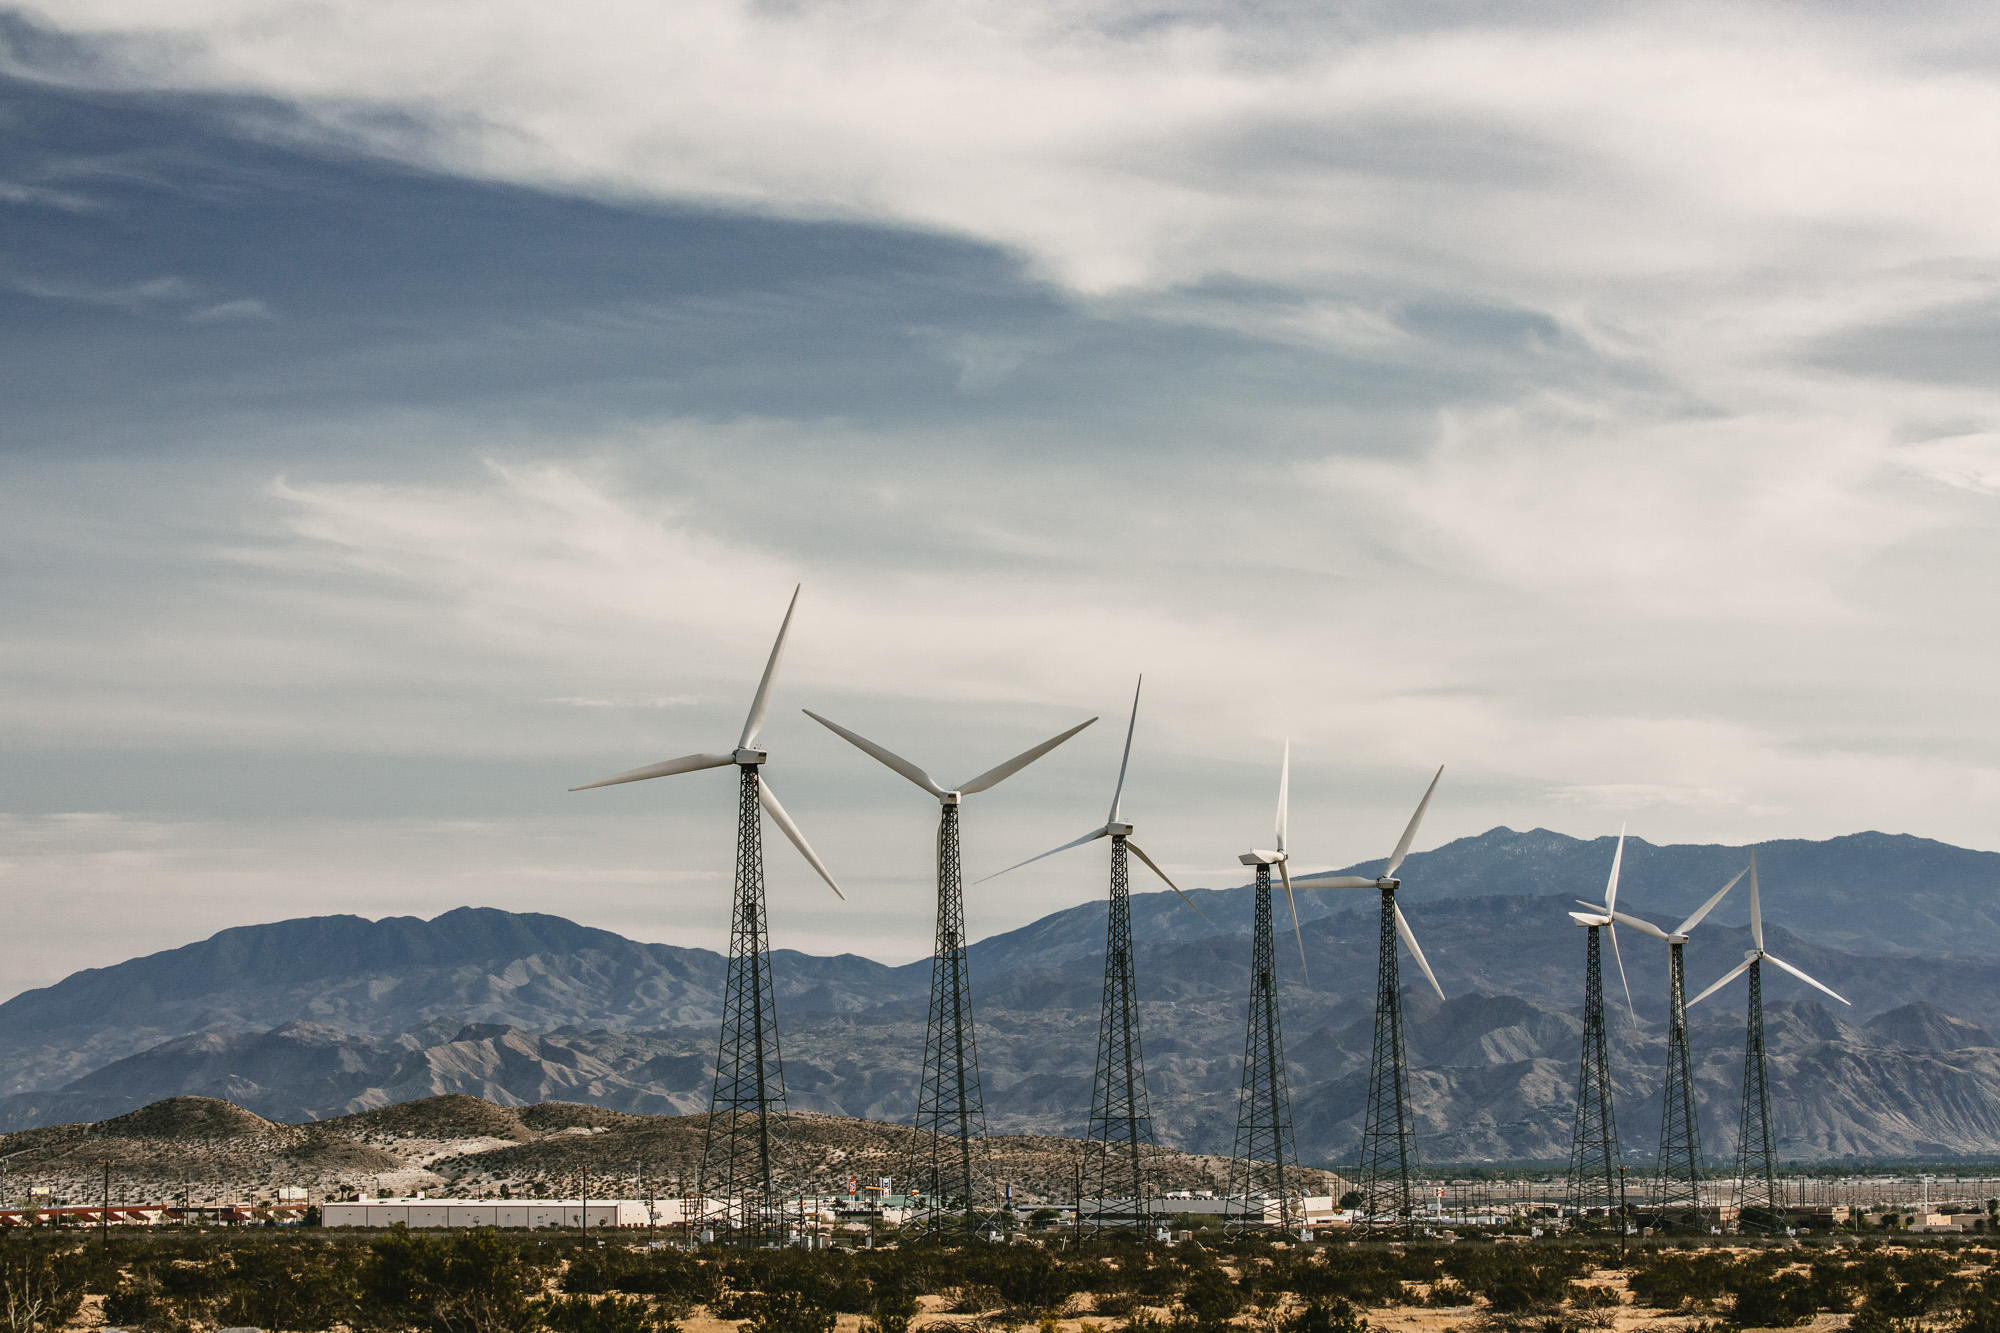 palm-springs-wind-farm-180115-0986.jpg